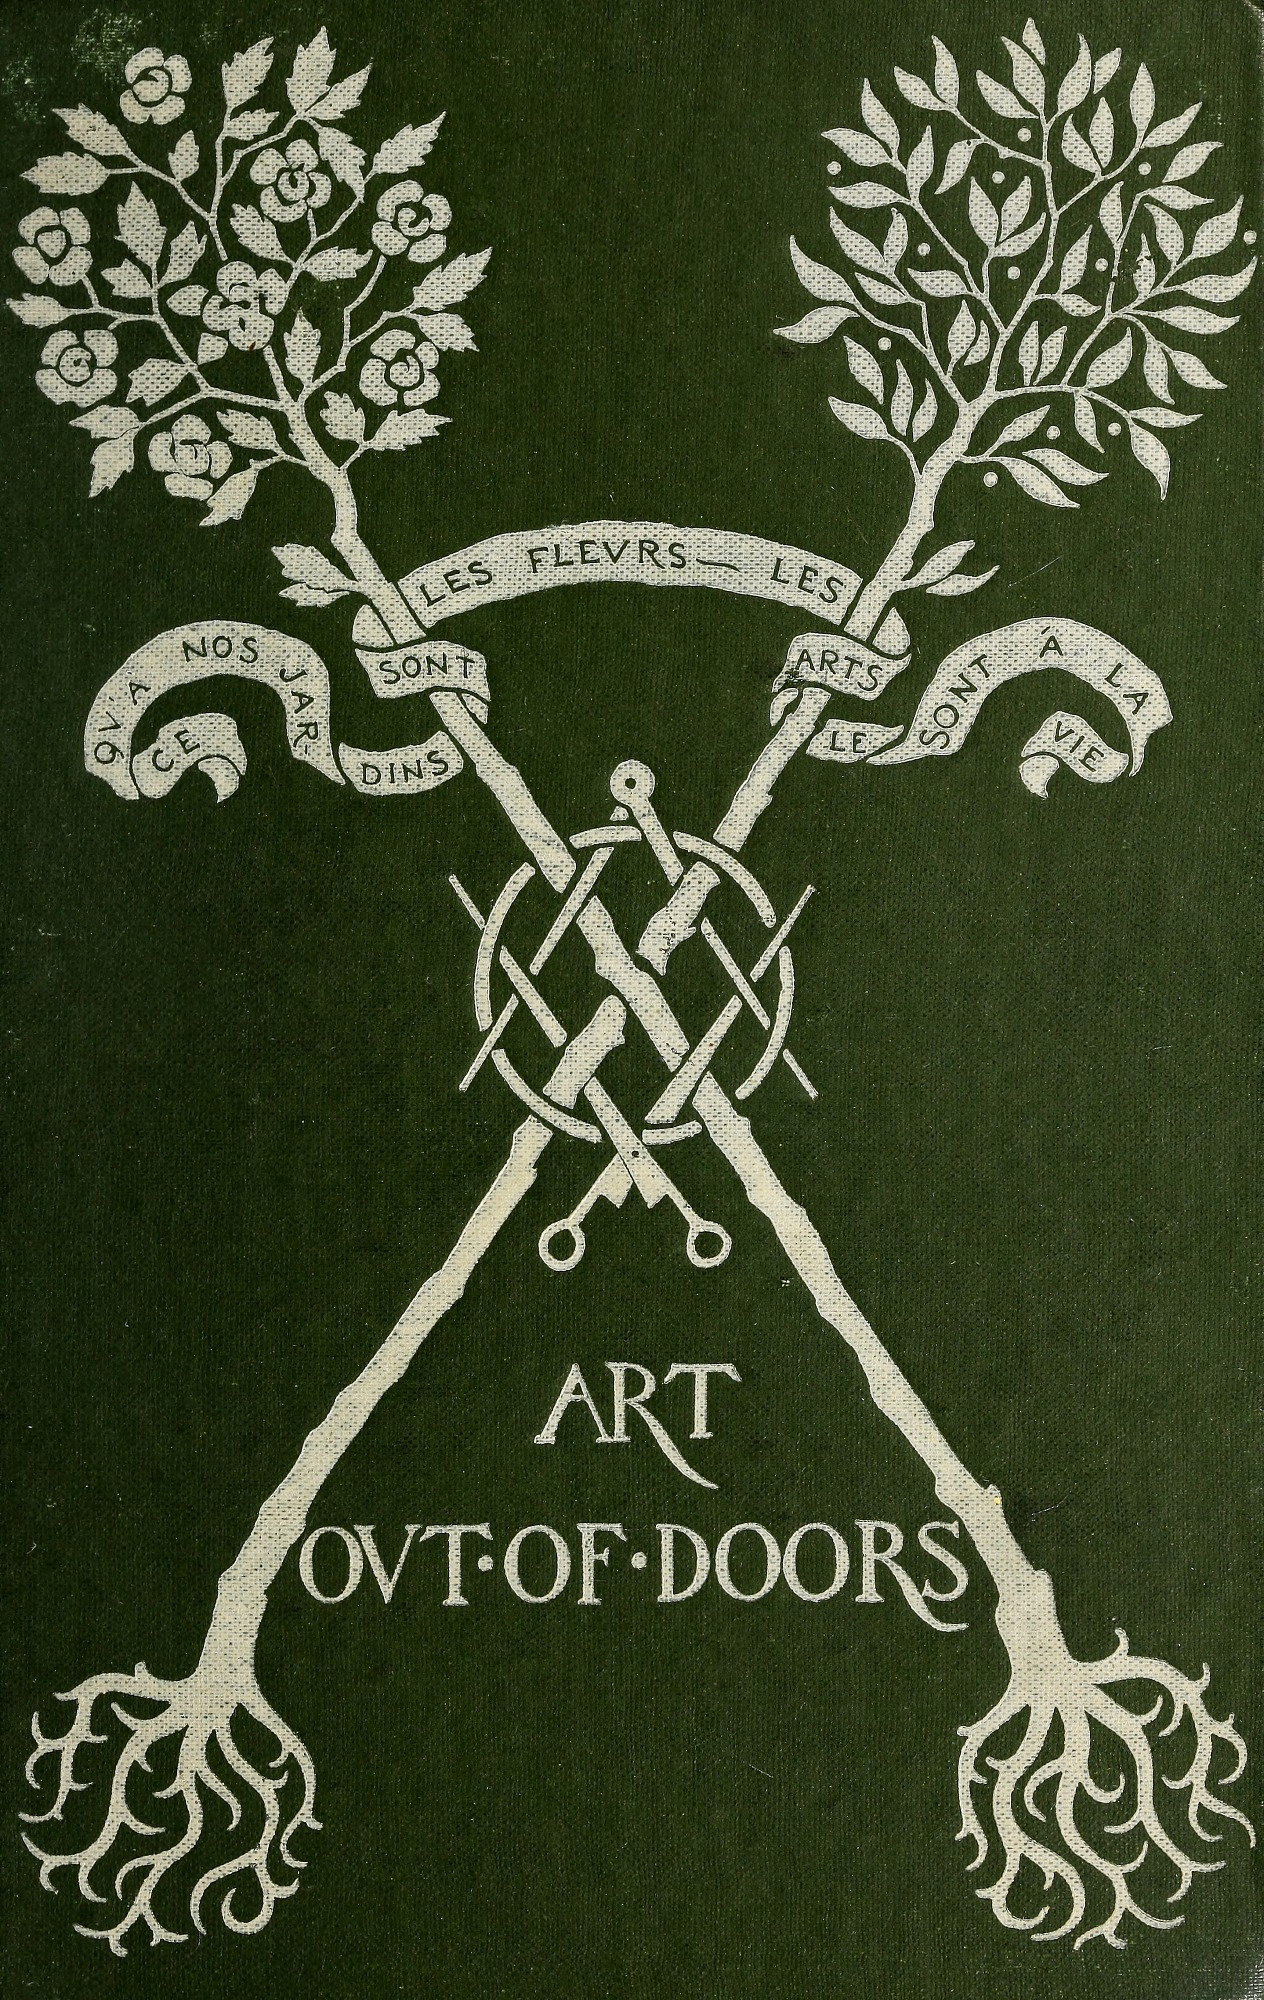 Mrs. Schuyler Van Rensselaer, Art Out-of-Doors: Hints on Good Taste Gardening, New York, 1925